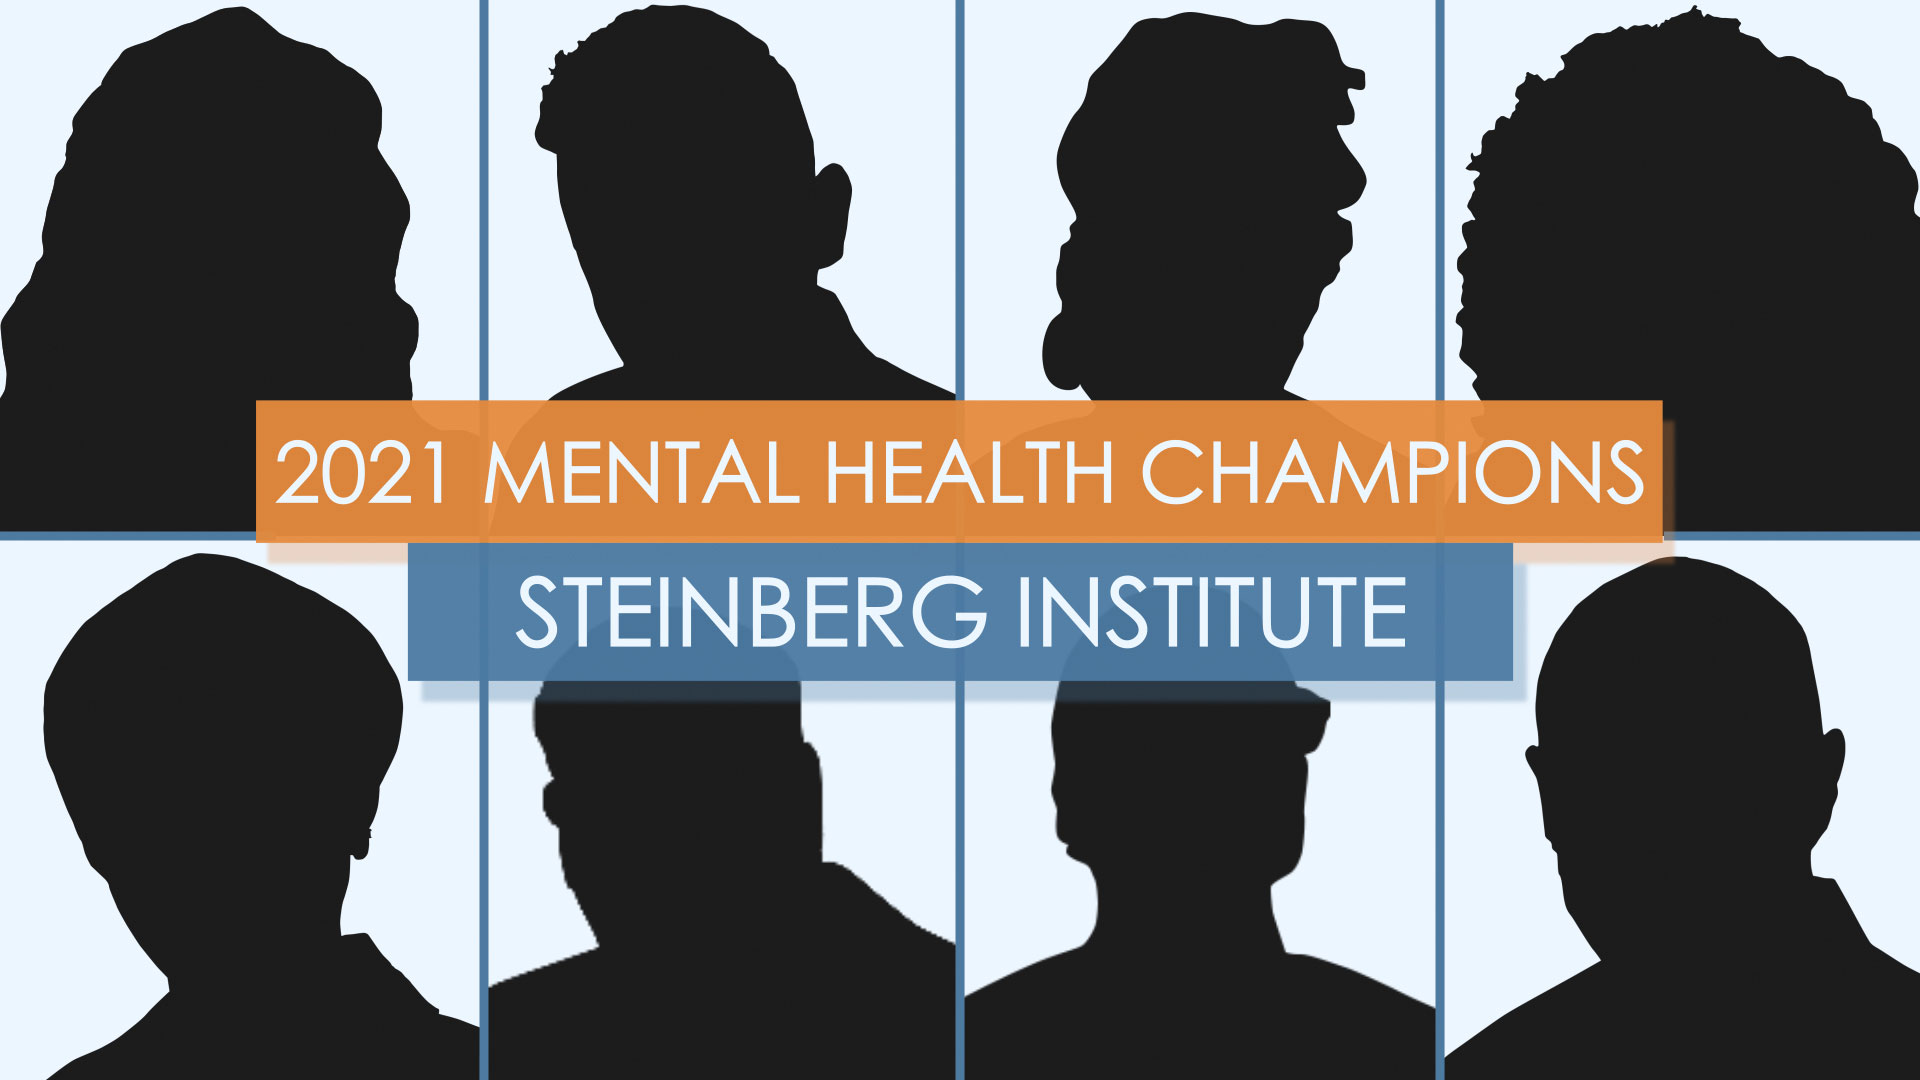 Steinberg Institute 2021 Mental Health Champions